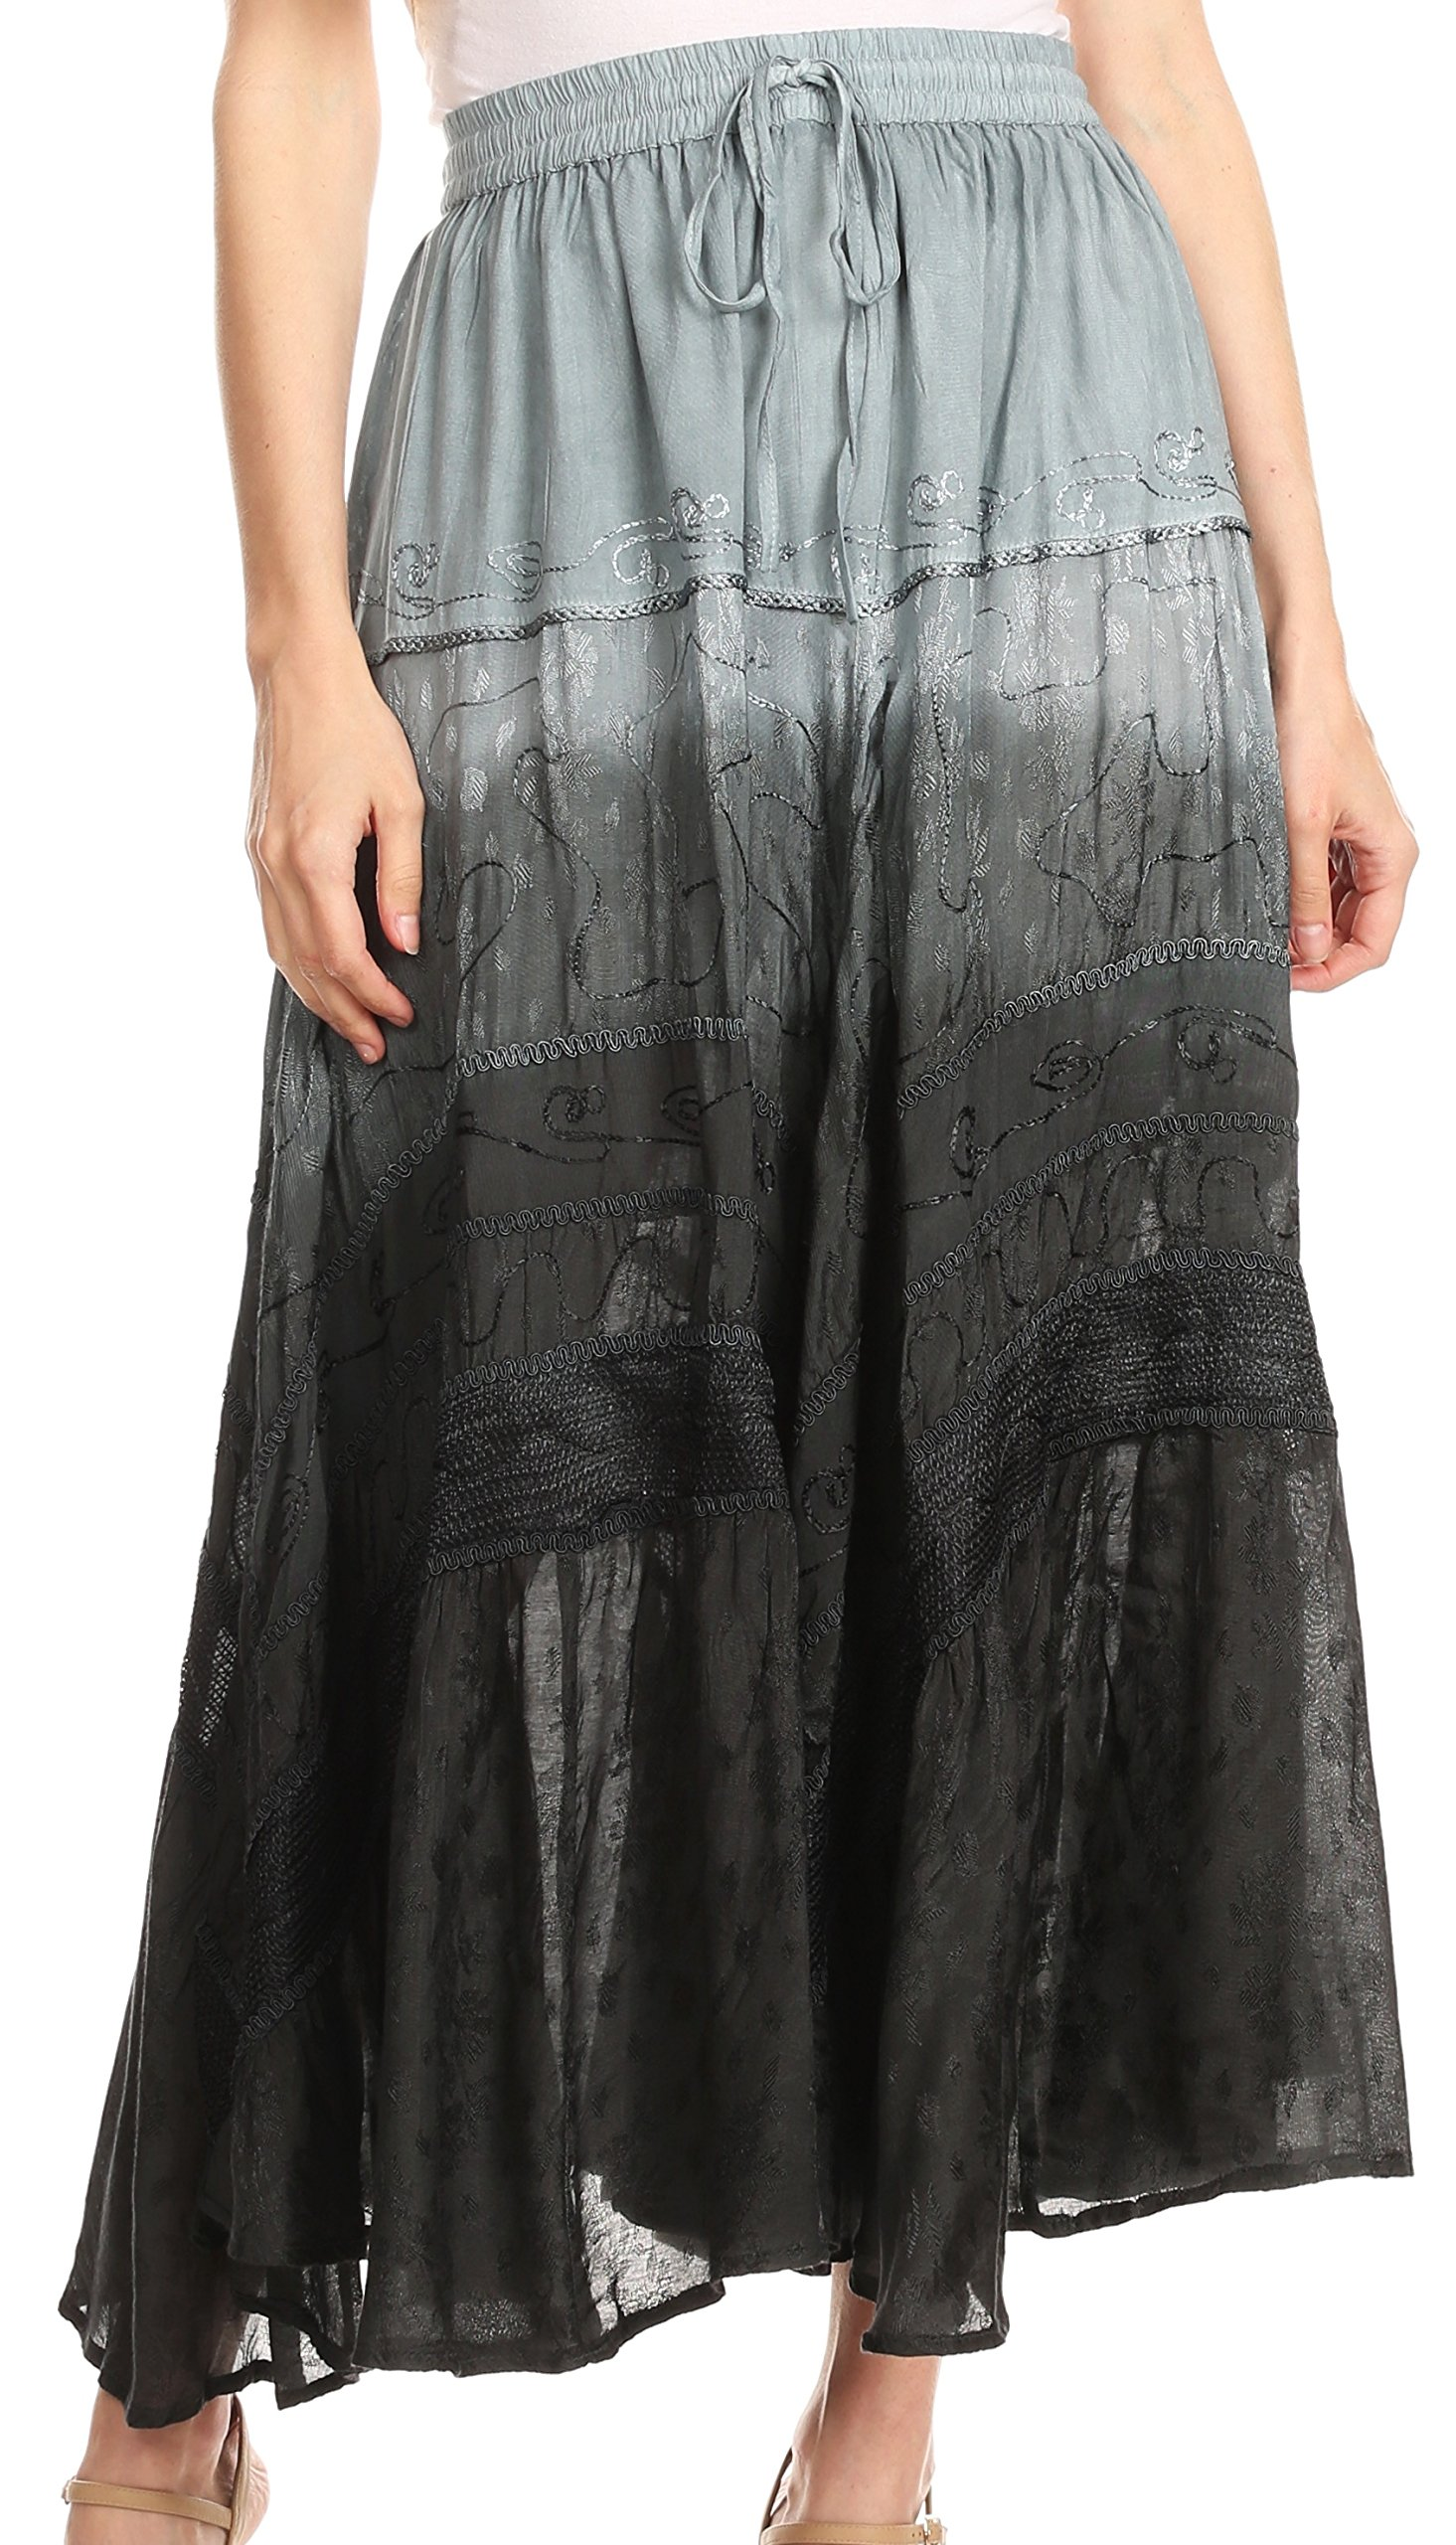 Sakkas 31009 - Alber Adjustable Waist Boho Skirt with Detailed Embroidery with Ruffle Trim - Ombre Black - OS